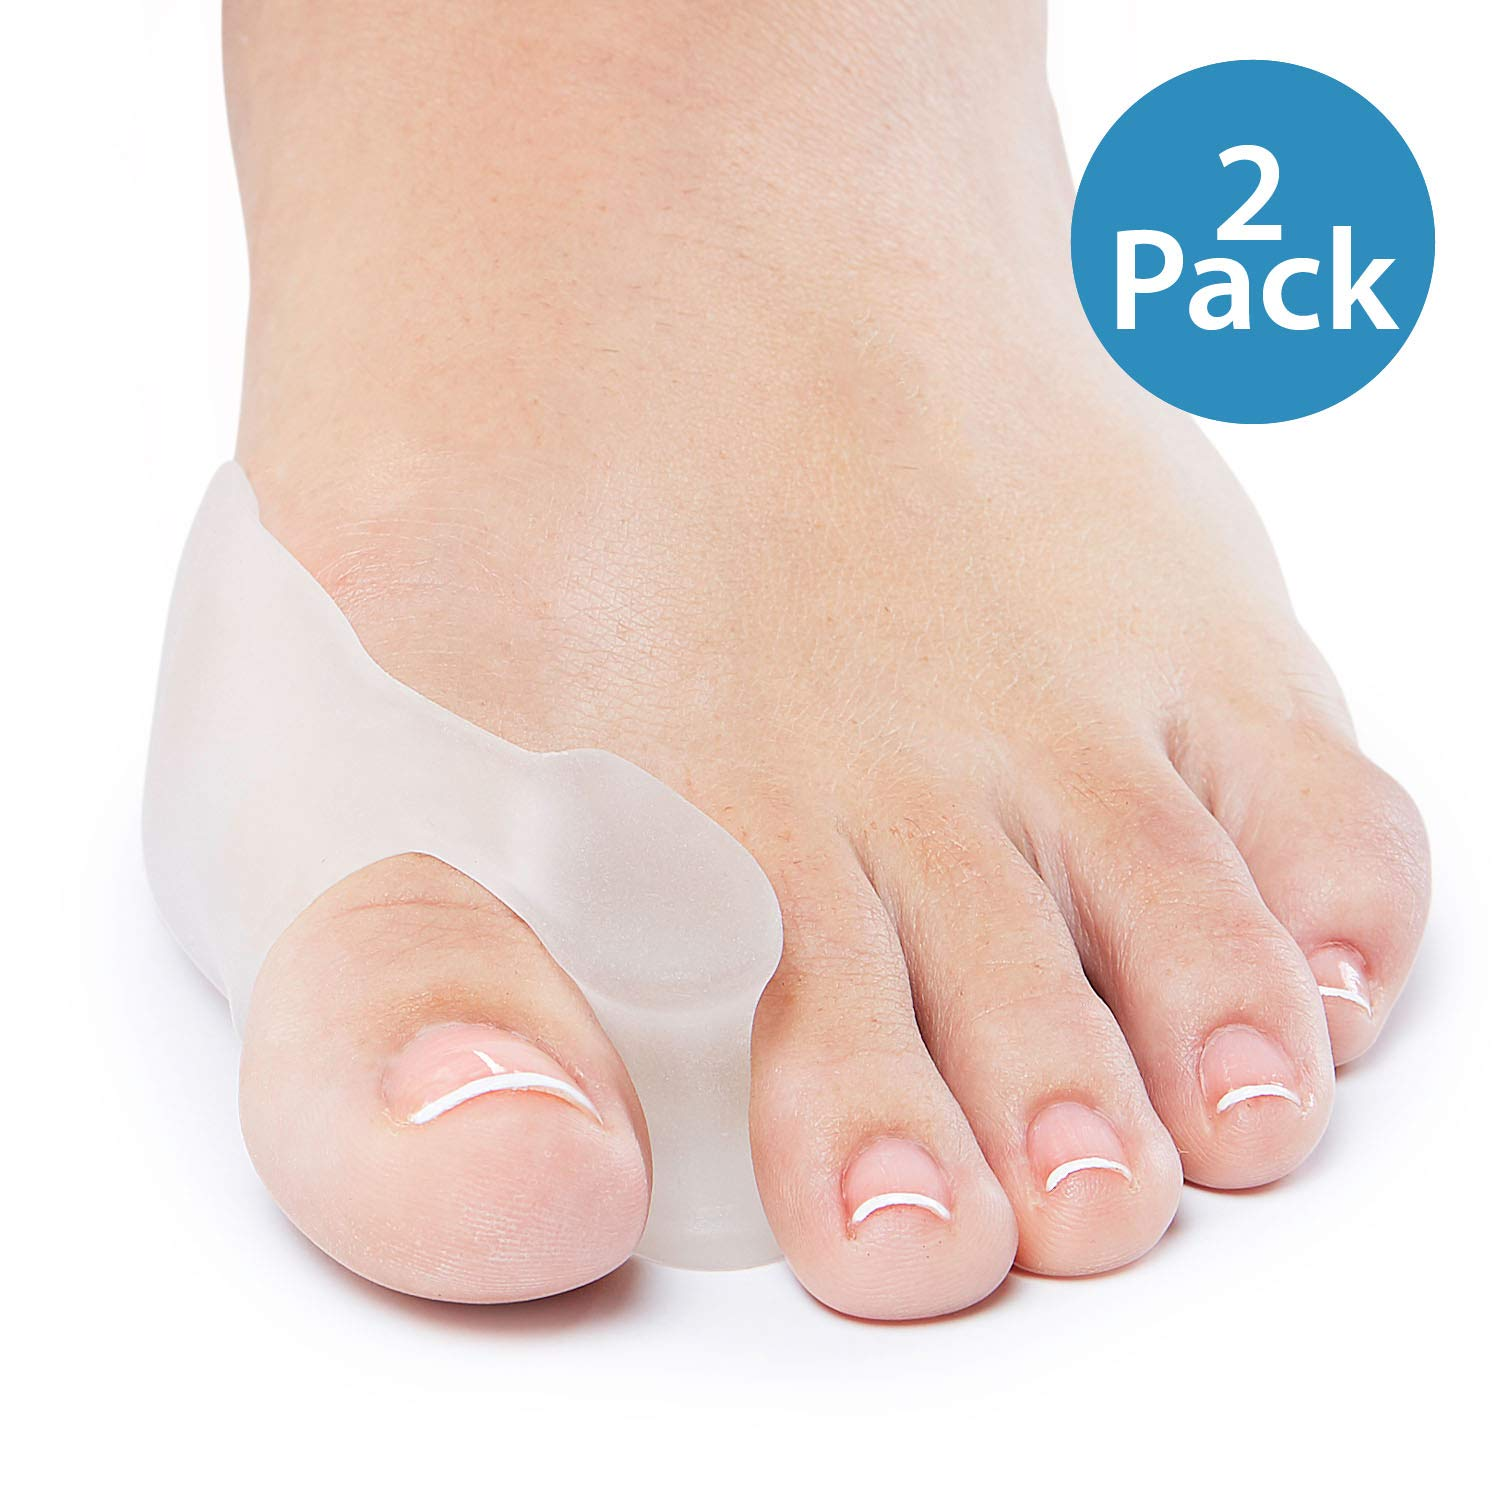 NatraCure Gel Big Toe Bunion Guards & Toe Spreaders - 1315-M CAT 2PK -